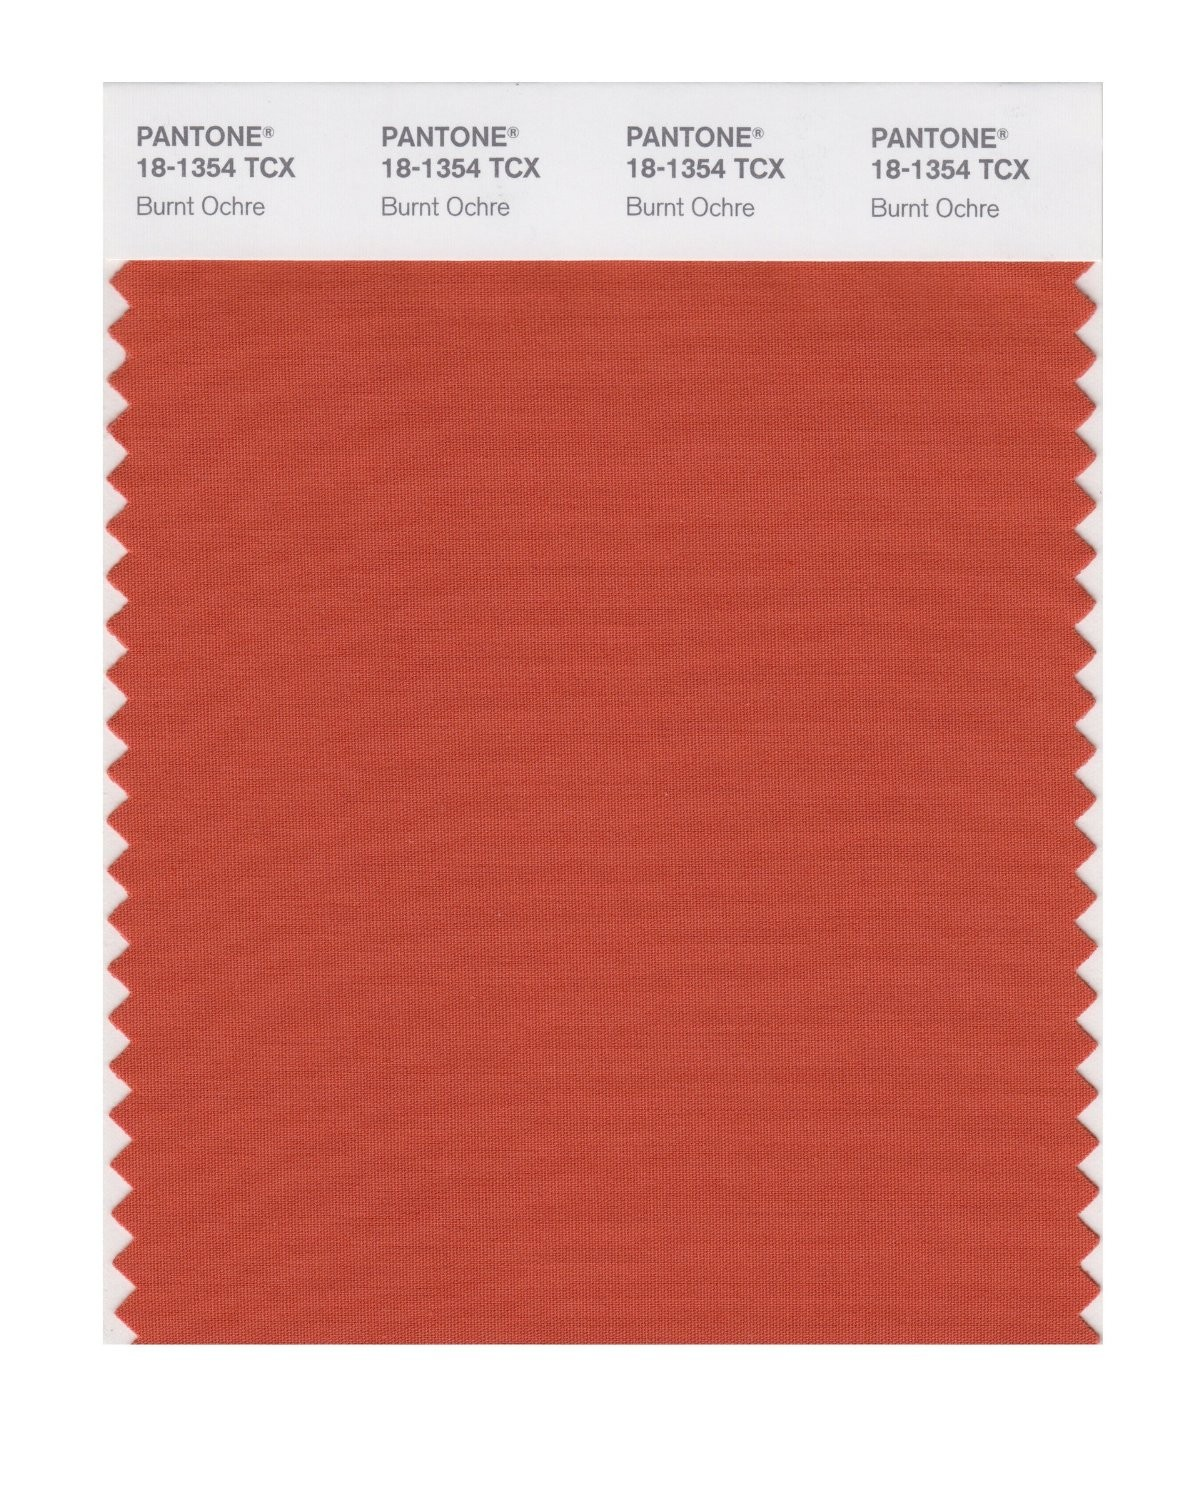 Pantone 18-1354 TCX Swatch Card Burnt Ochre